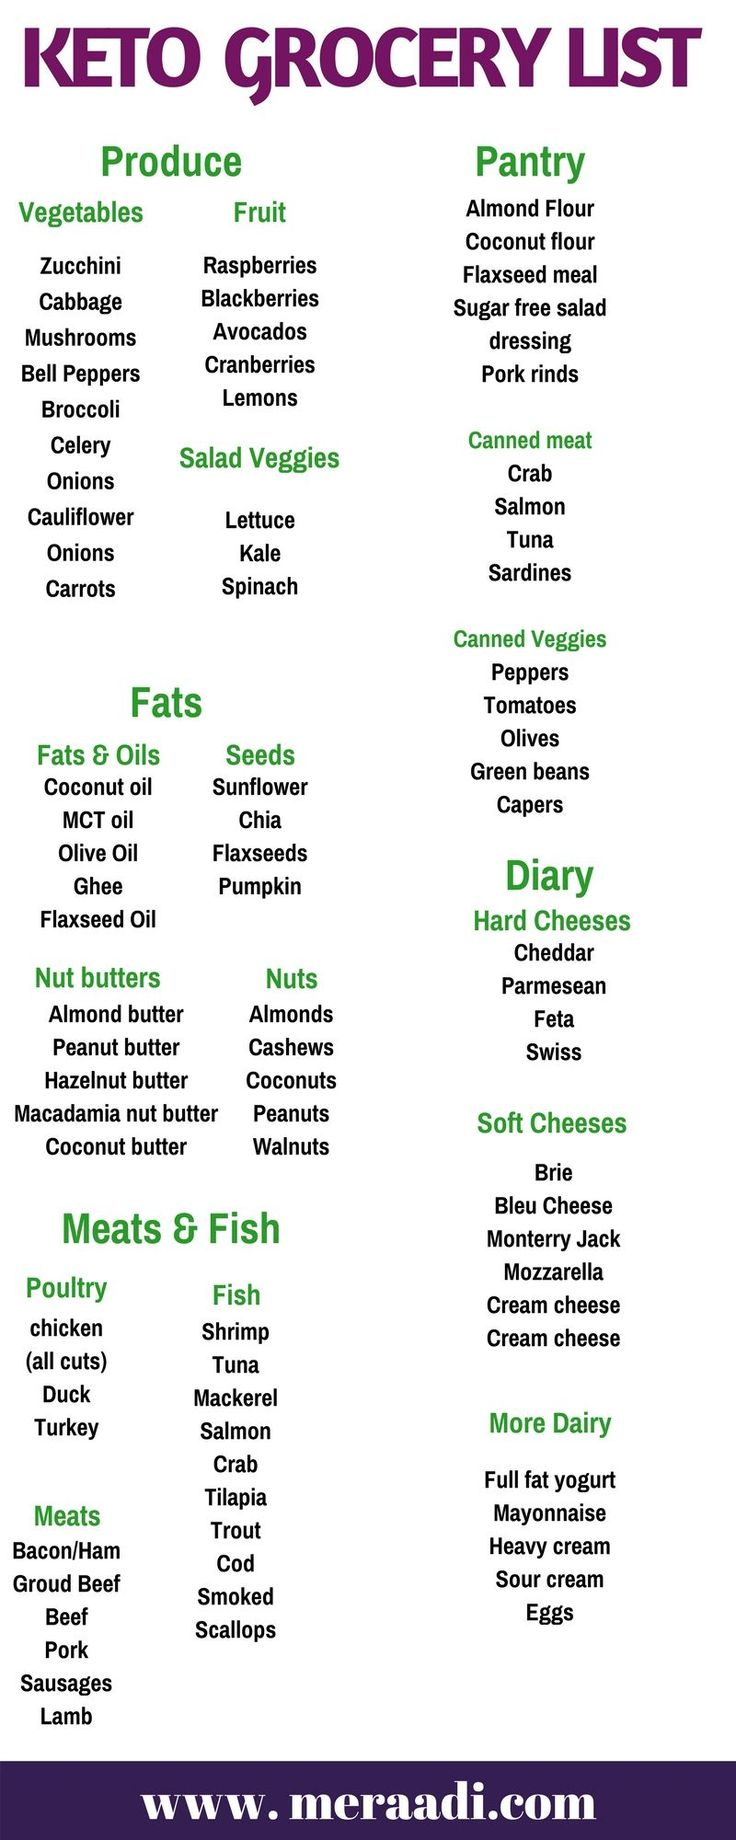 This keto grocery list is THE BEST! This keto shopping list has all the amazing foods that you can eat to lose weight on the keto diet. I'm so glad I found this keto grocery list. Now I know exactly what foods I can eat and enjoy on the ketogenic diet for